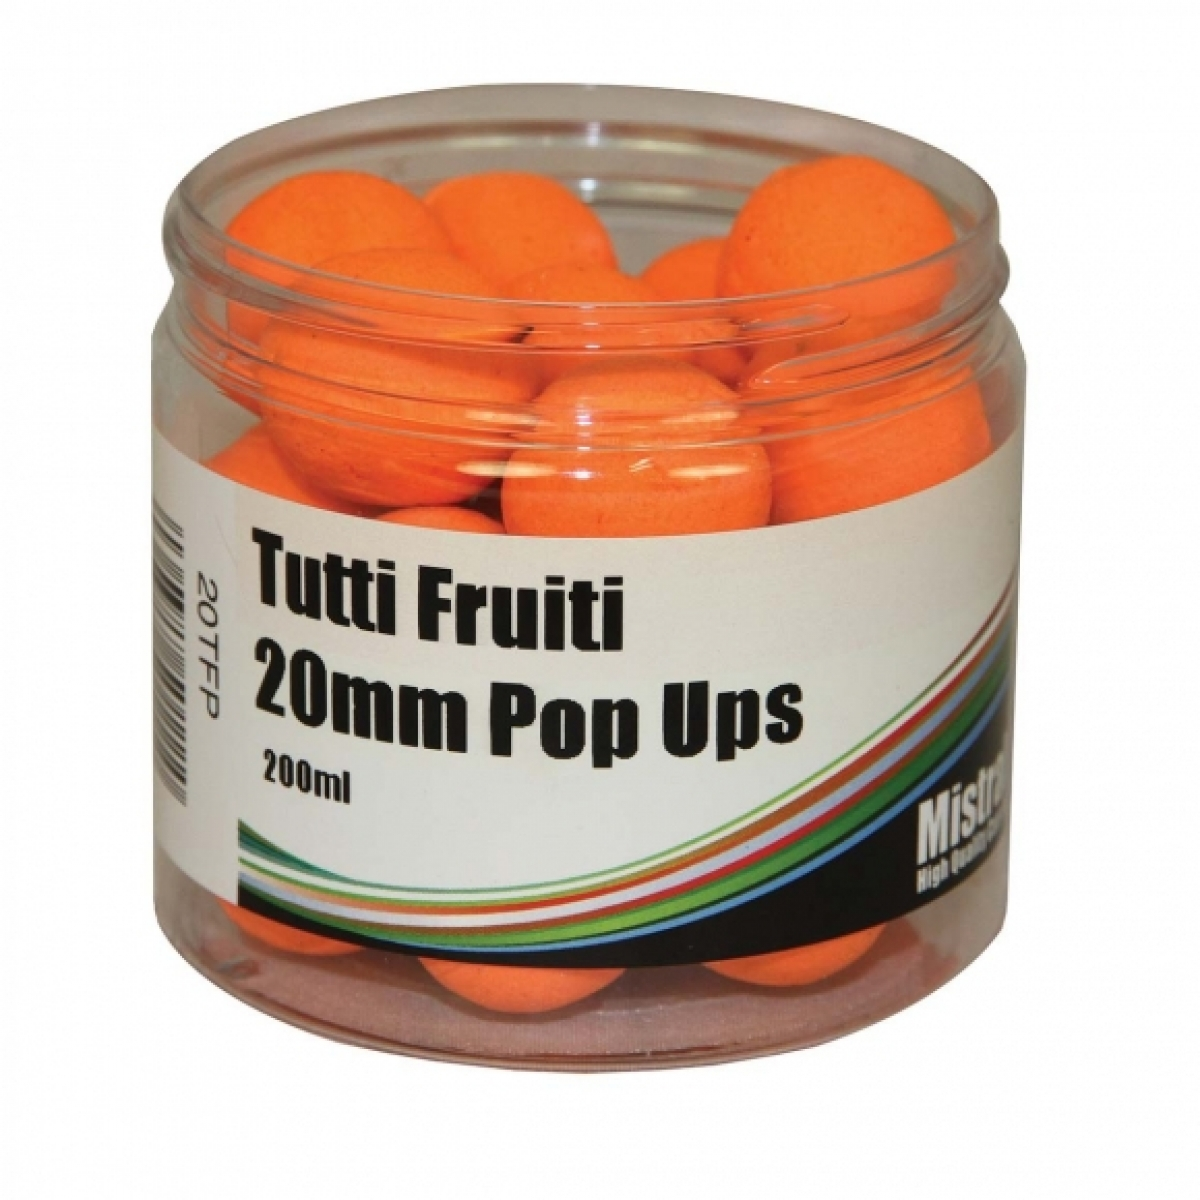 Tutti Fruiti Pop Up Pot 20mm